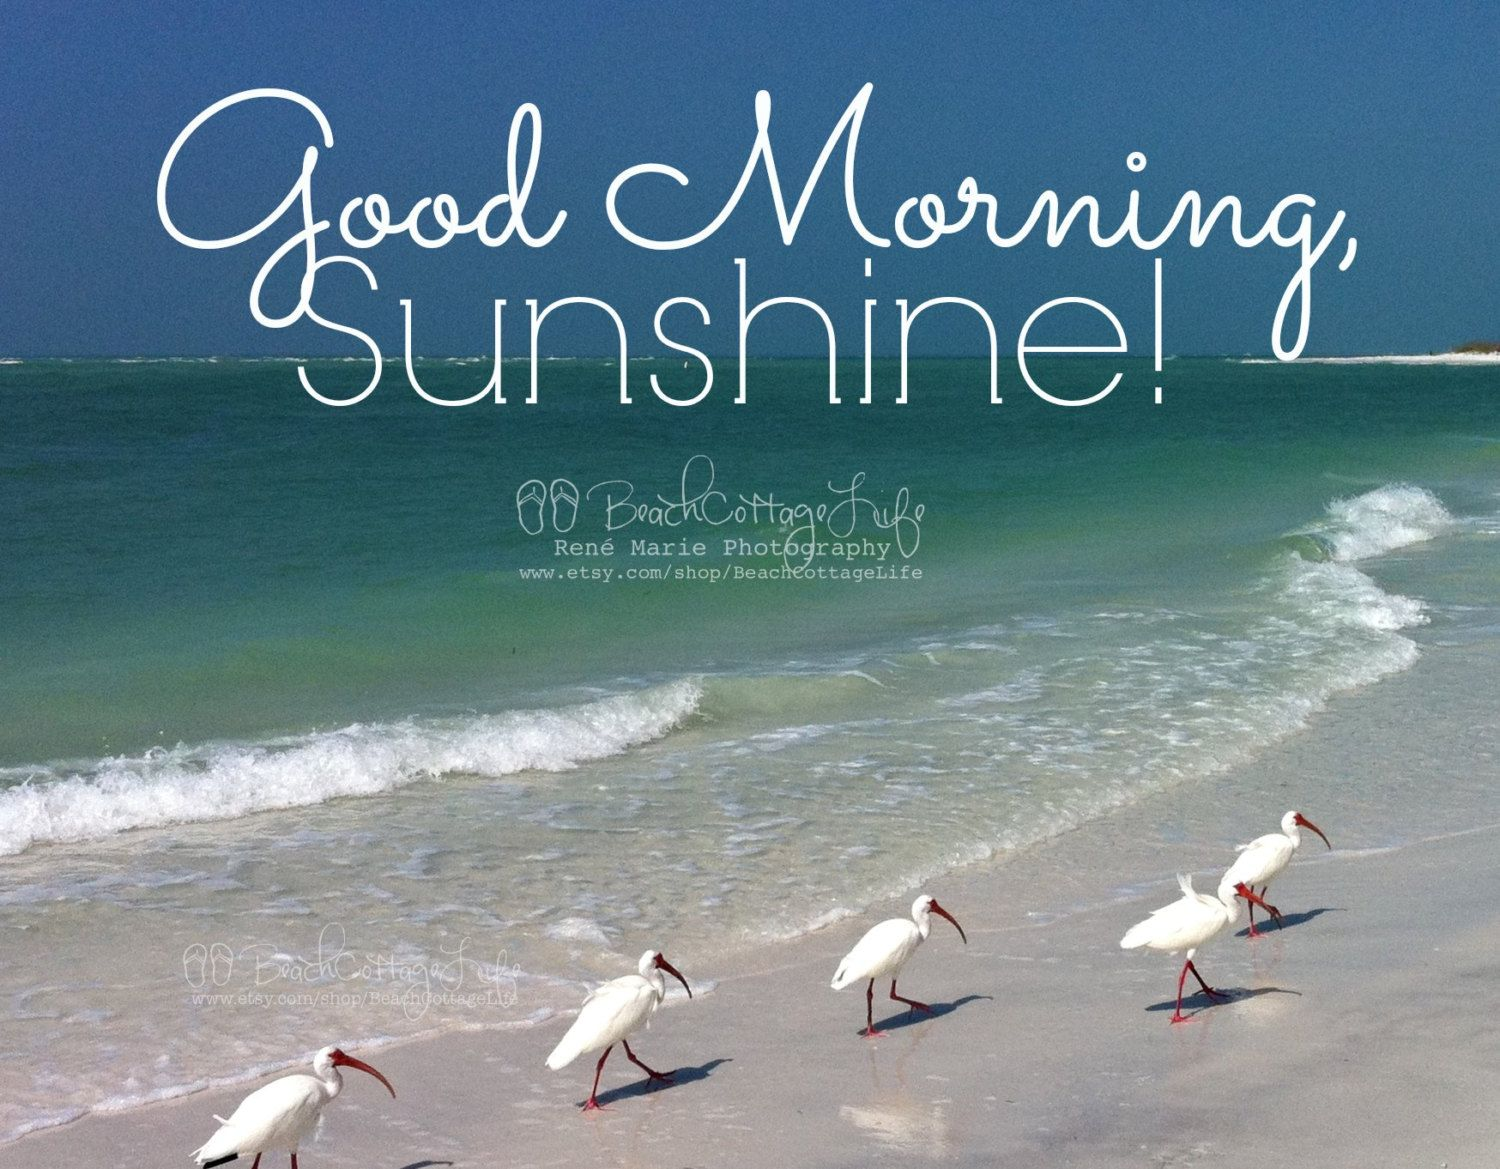 Good Morning Quotes Beach : Seaside morning mages google search beaches oceans